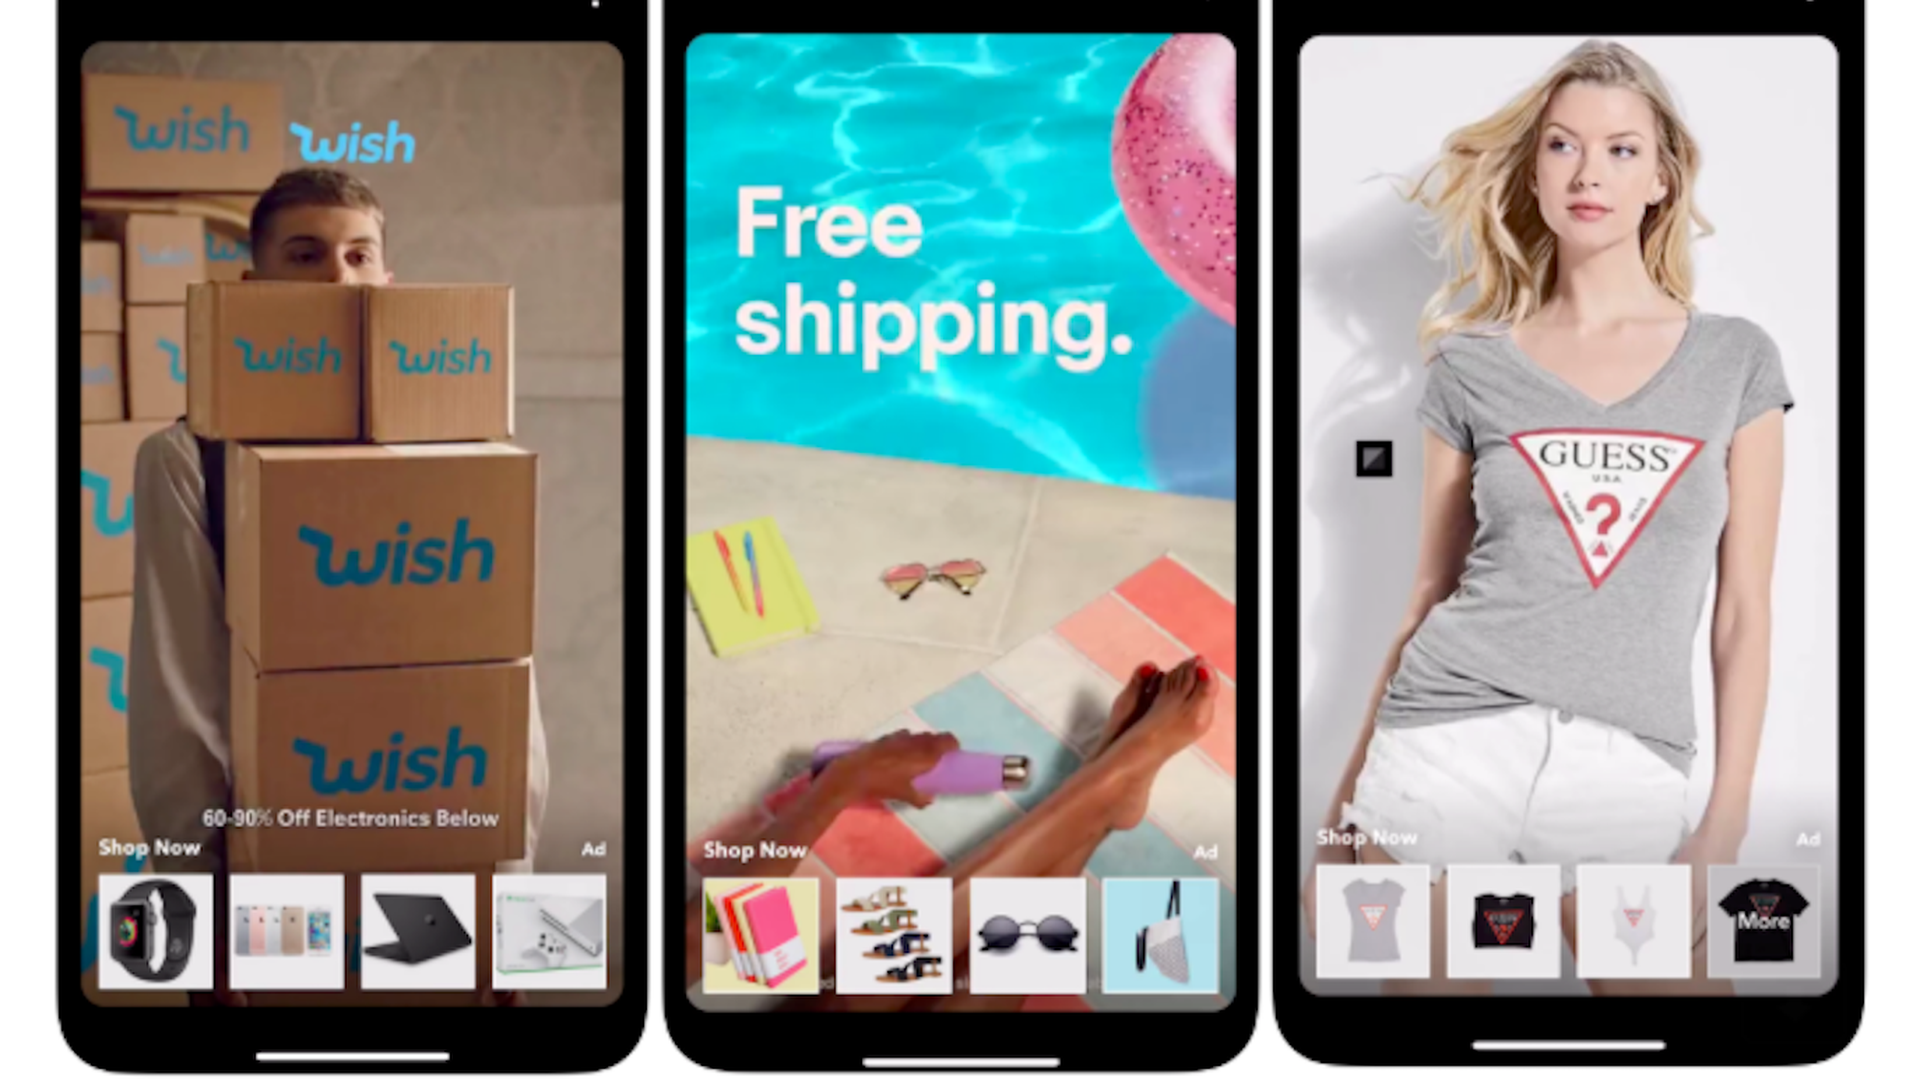 Snapchat goes all in on e-commerce with new ad product launch